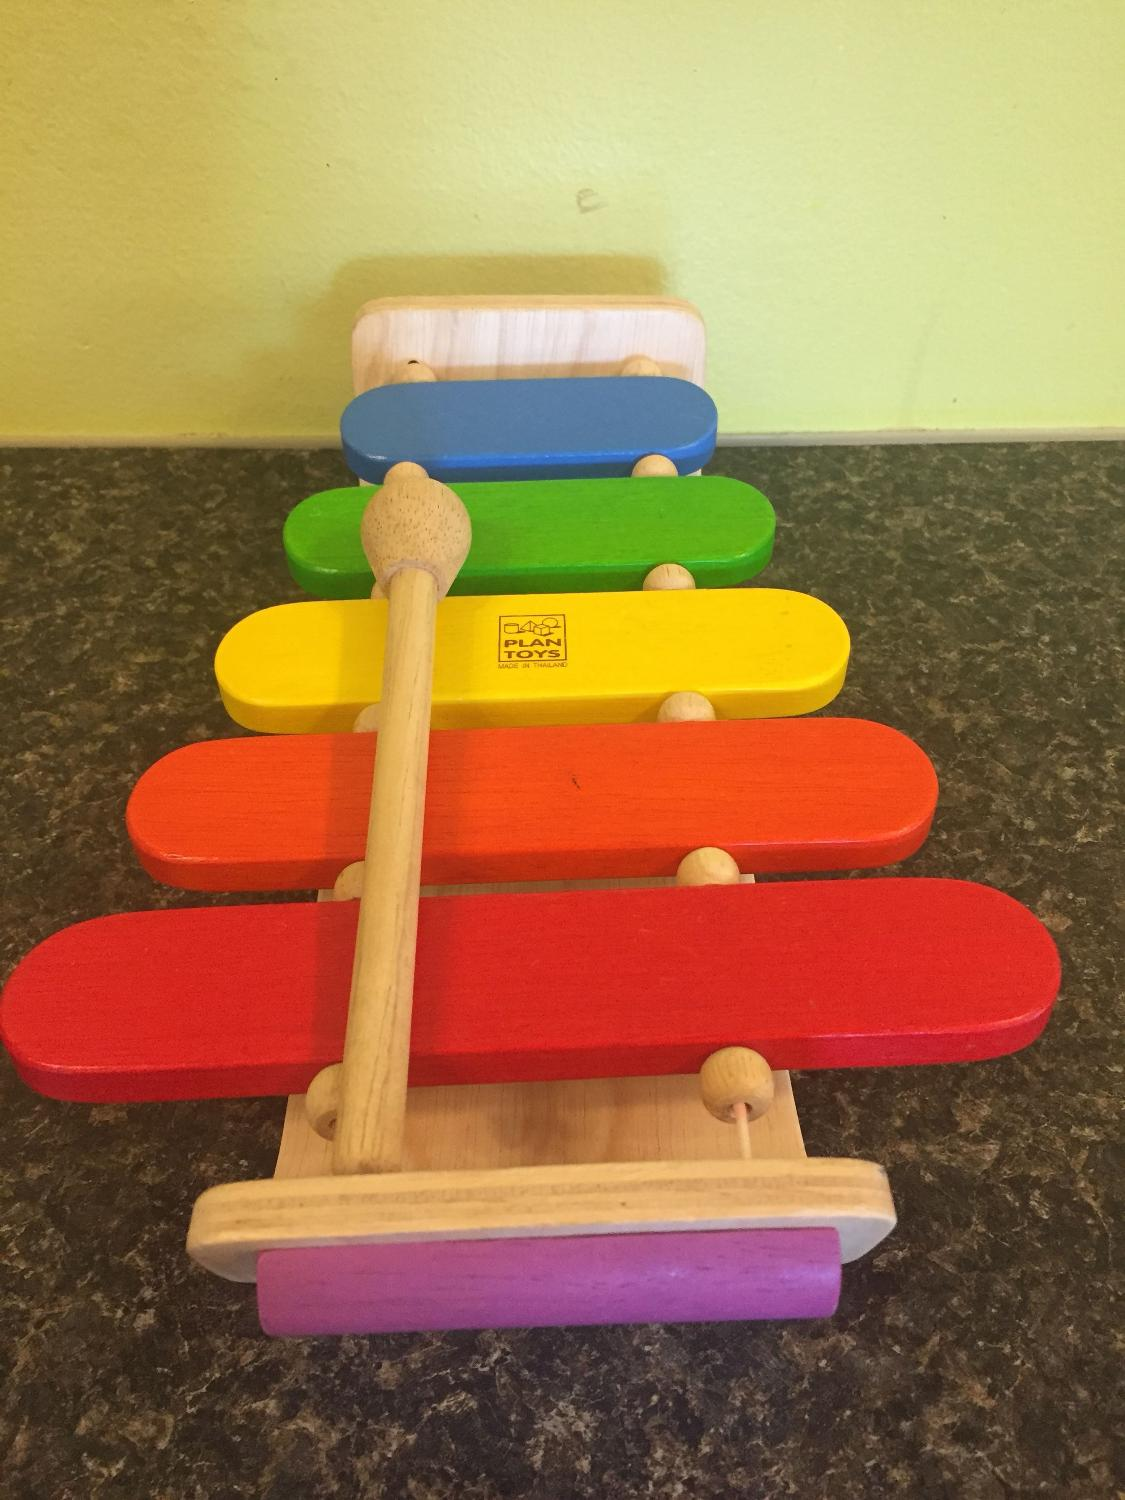 plan toy wooden xylophone euc . great eco friendly toys. pick up in vic  west. can leave out for convenient pickup.